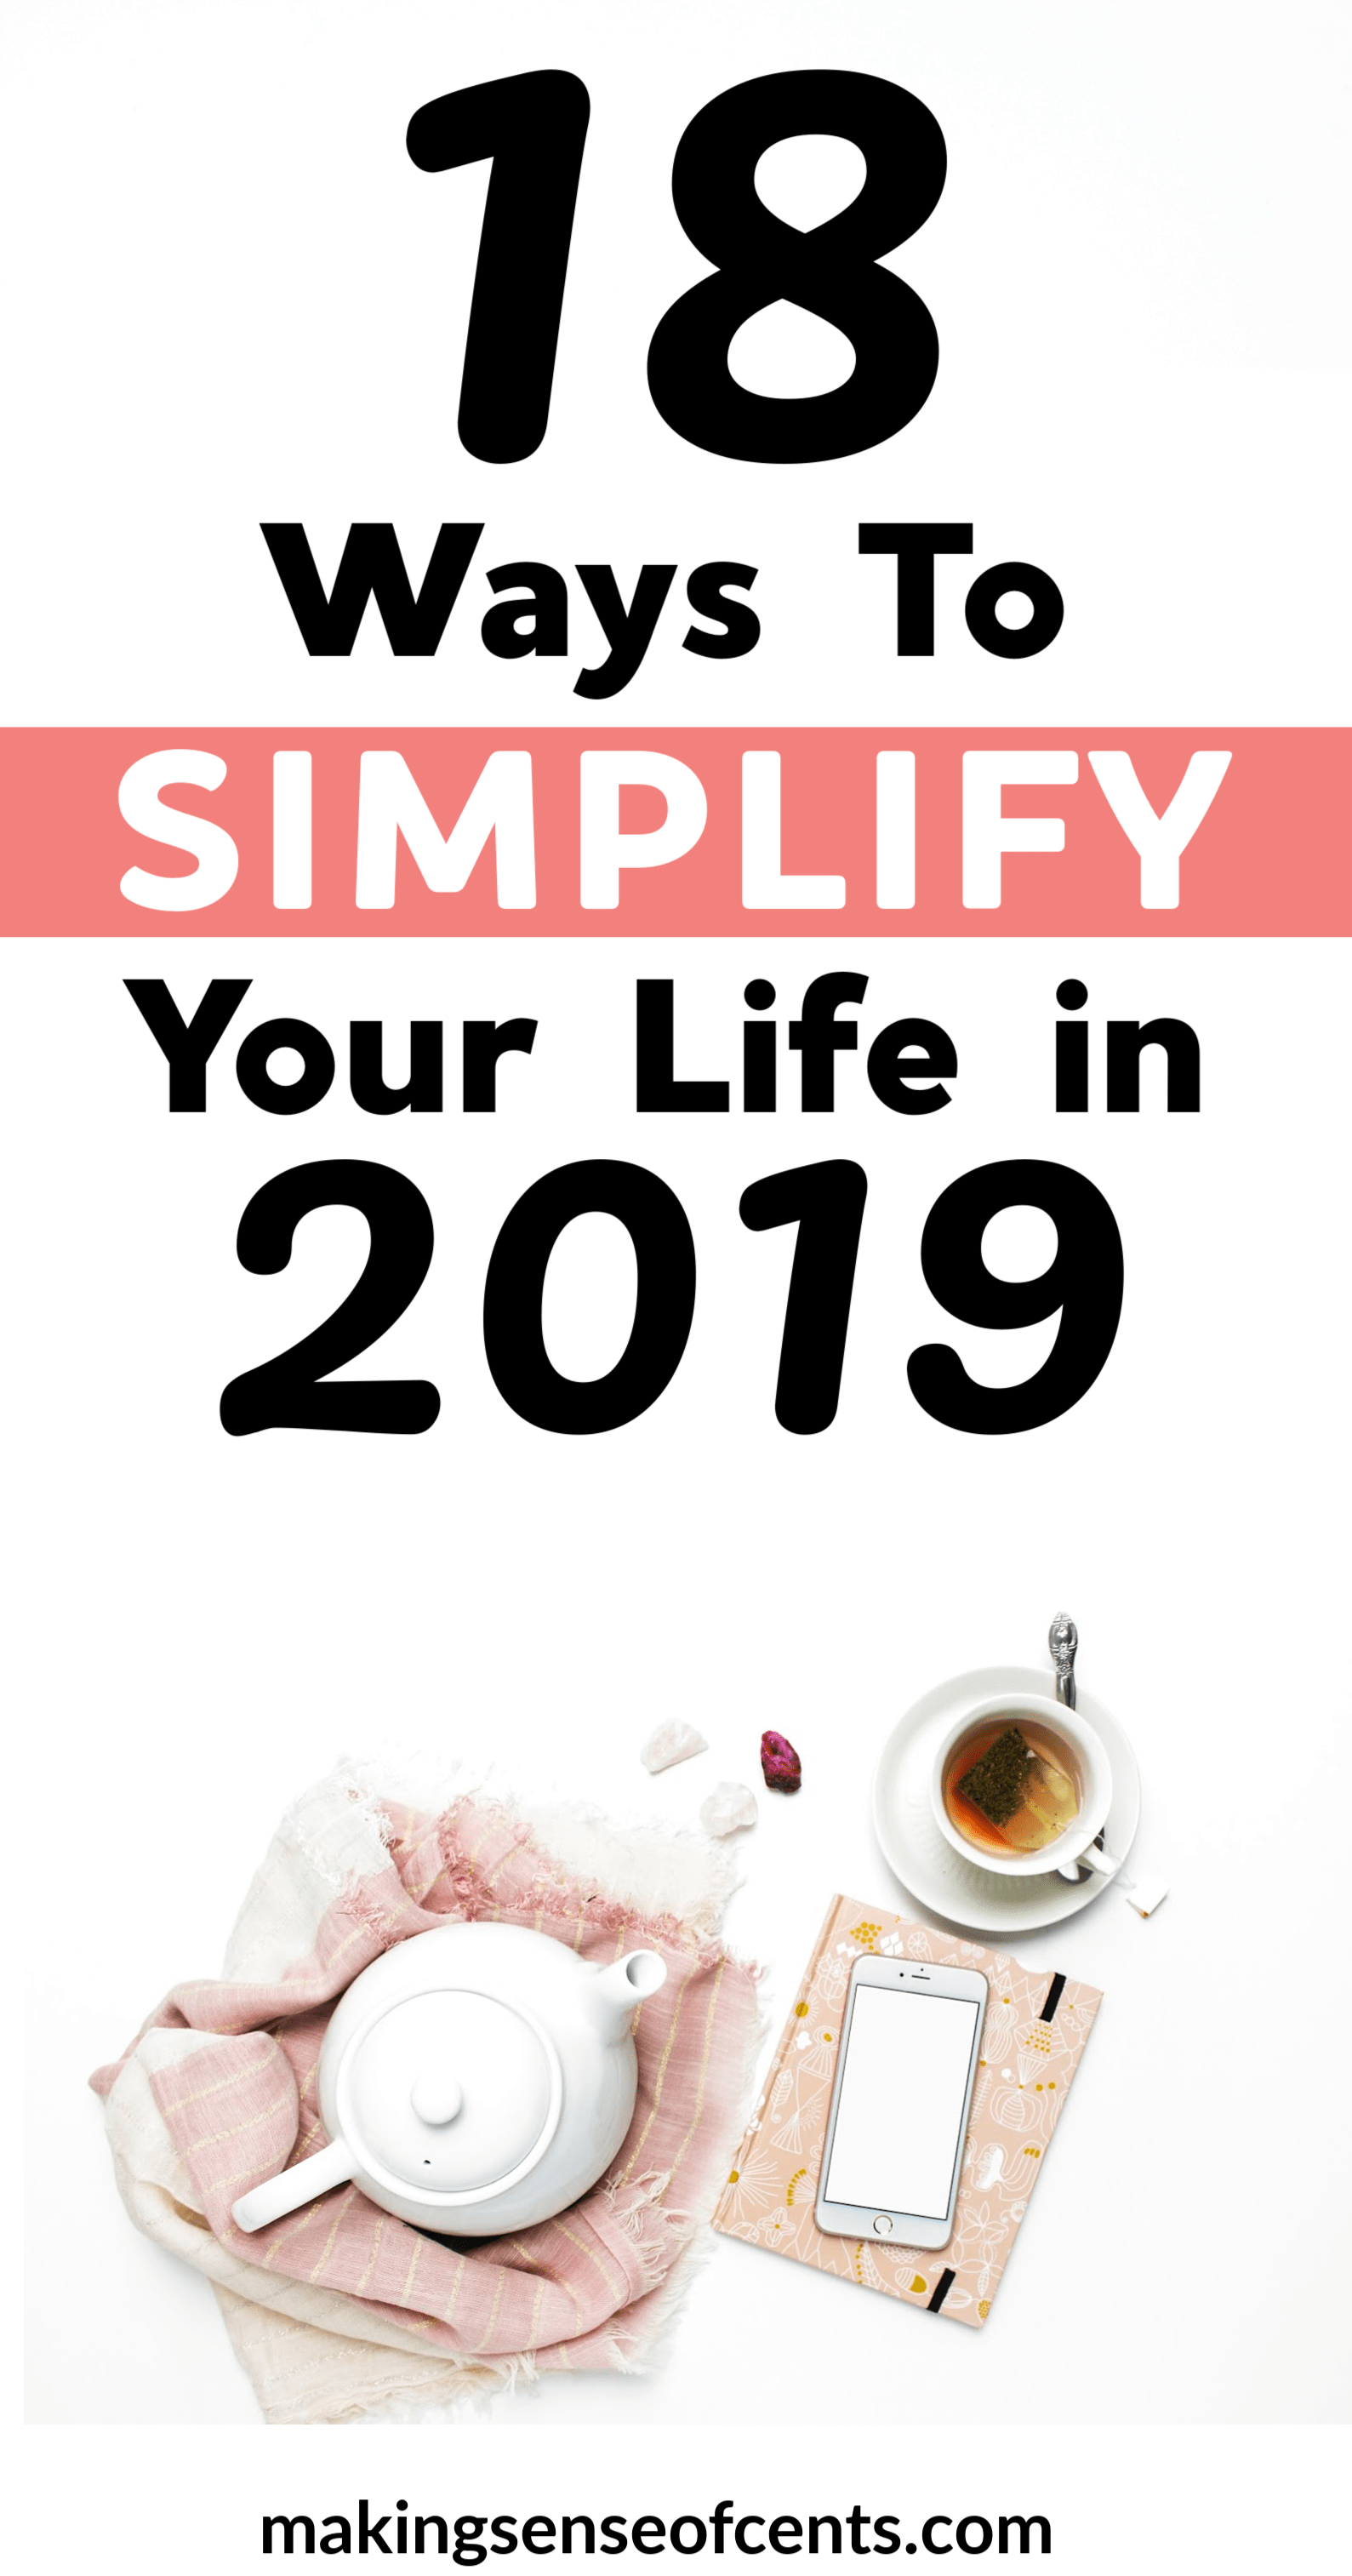 image about Design Your Day identified as 18 Methods In the direction of Simplify Your Daily life in just 2019 - Simplify Your Working day